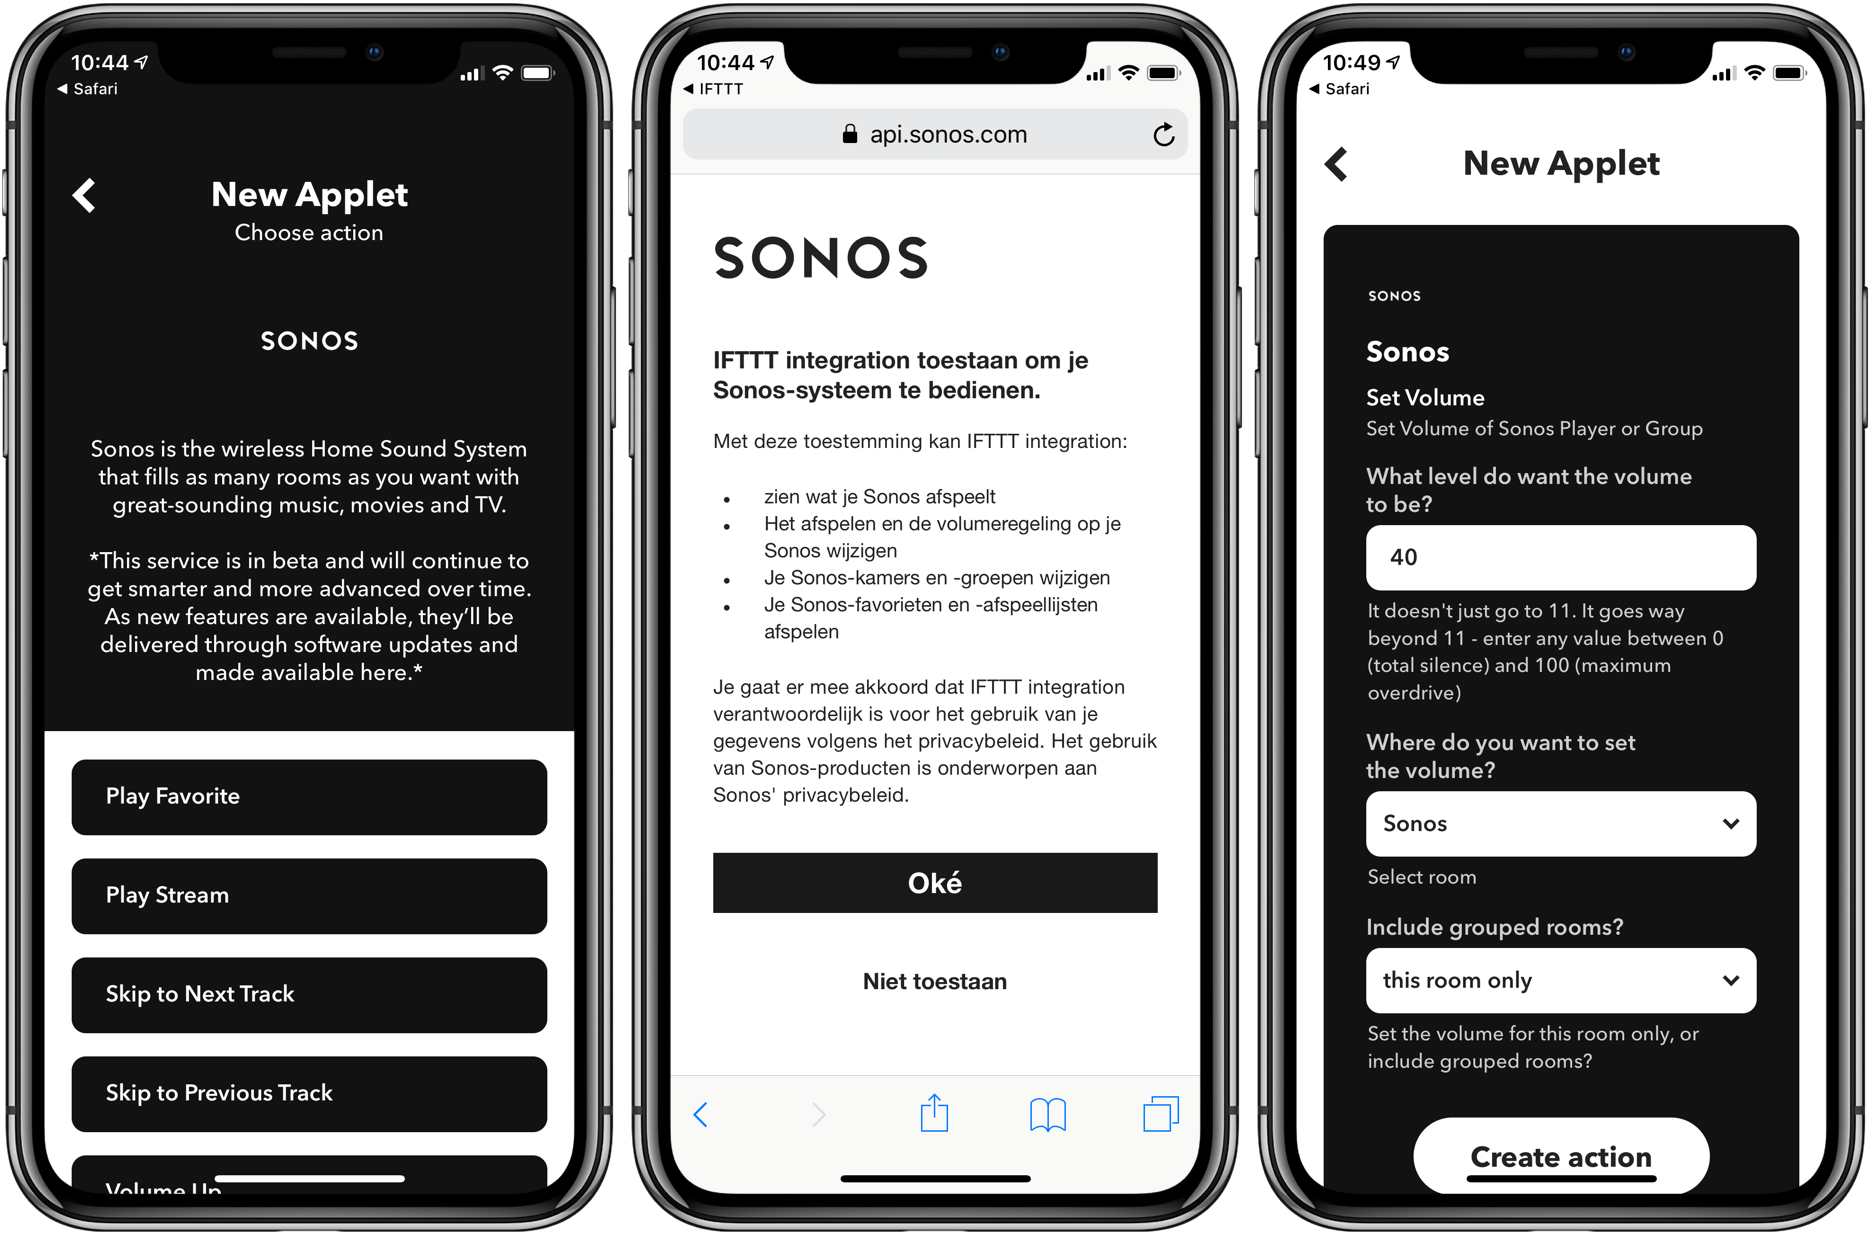 Siri Shortcuts: Sonos